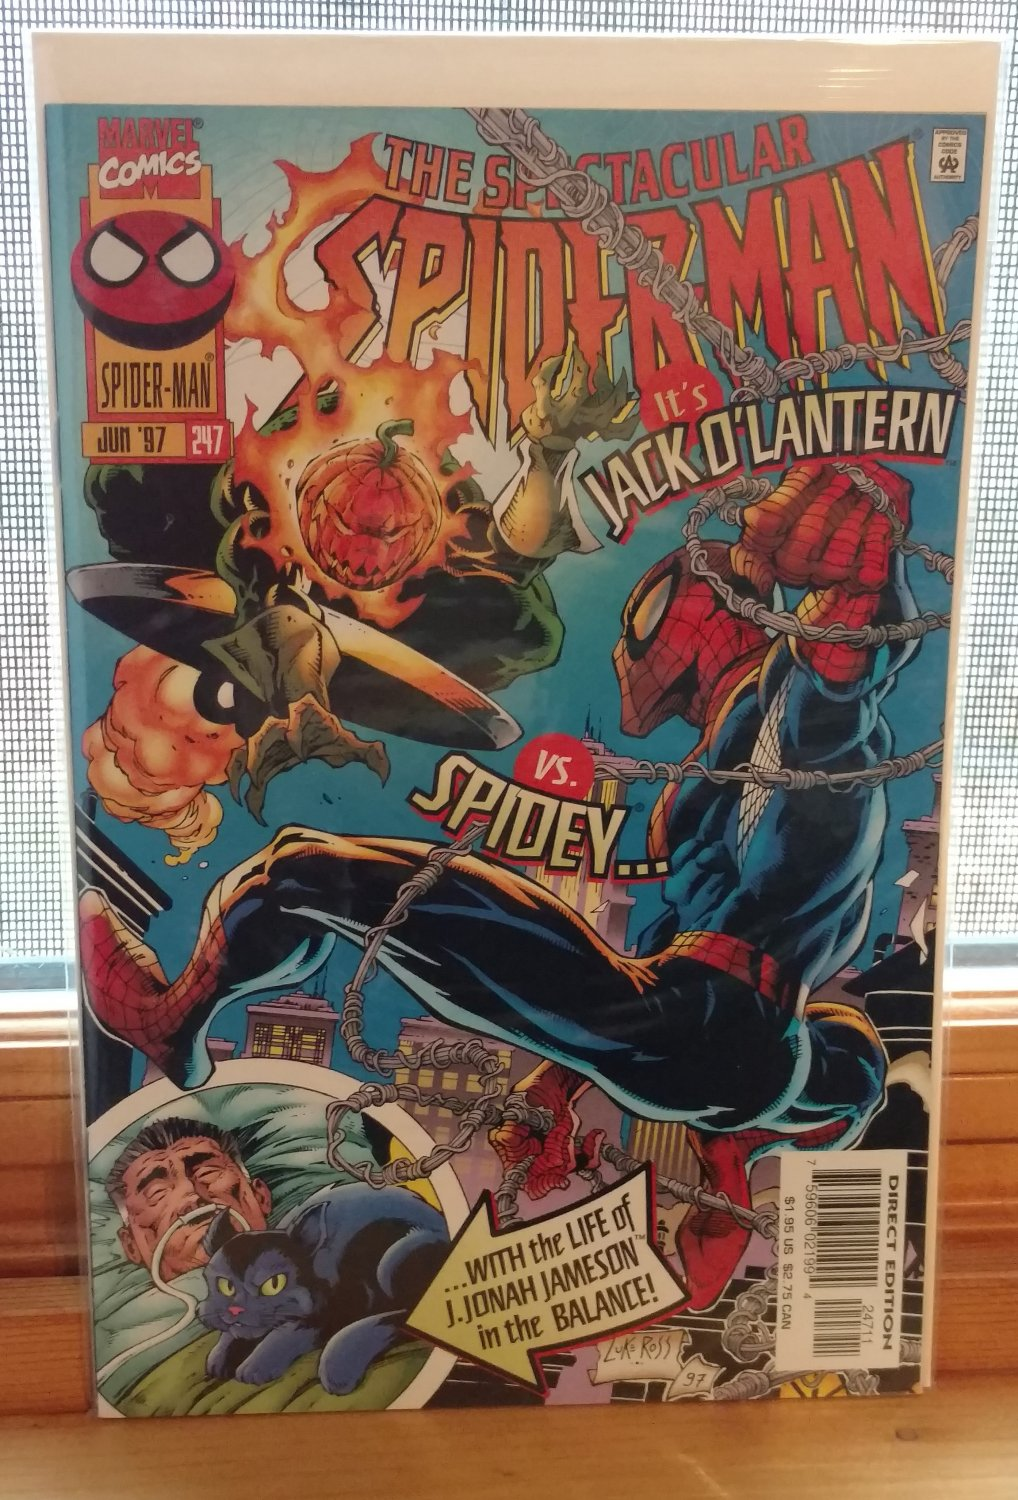 The Spectacular Spider-Man #247 Marvel Comics June 1997